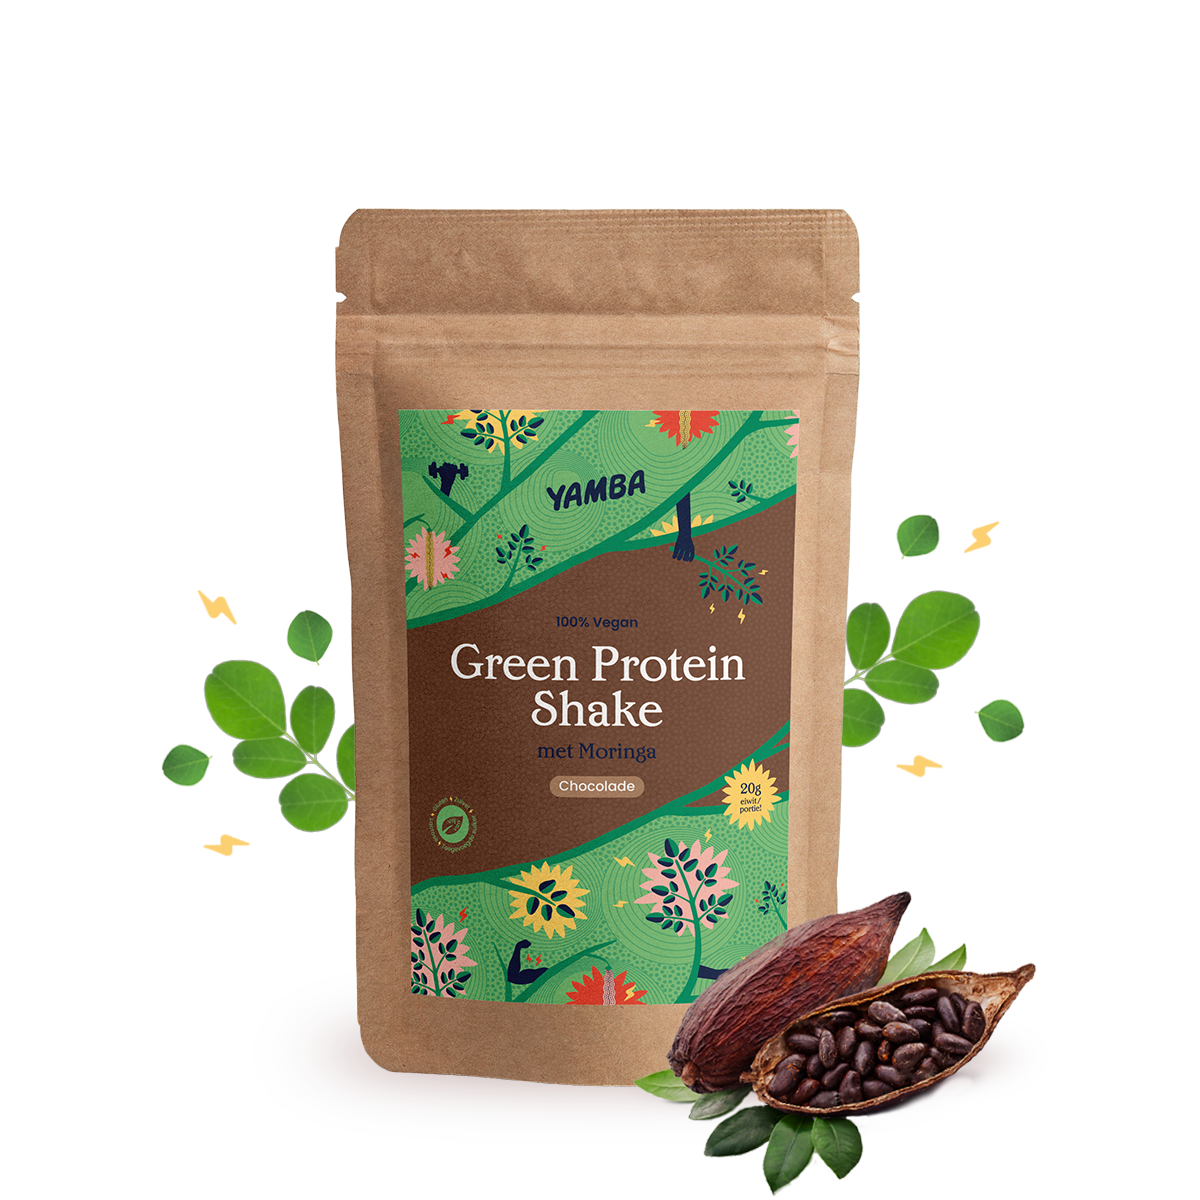 Green Protein Shake Chocolate (1kg) packaging